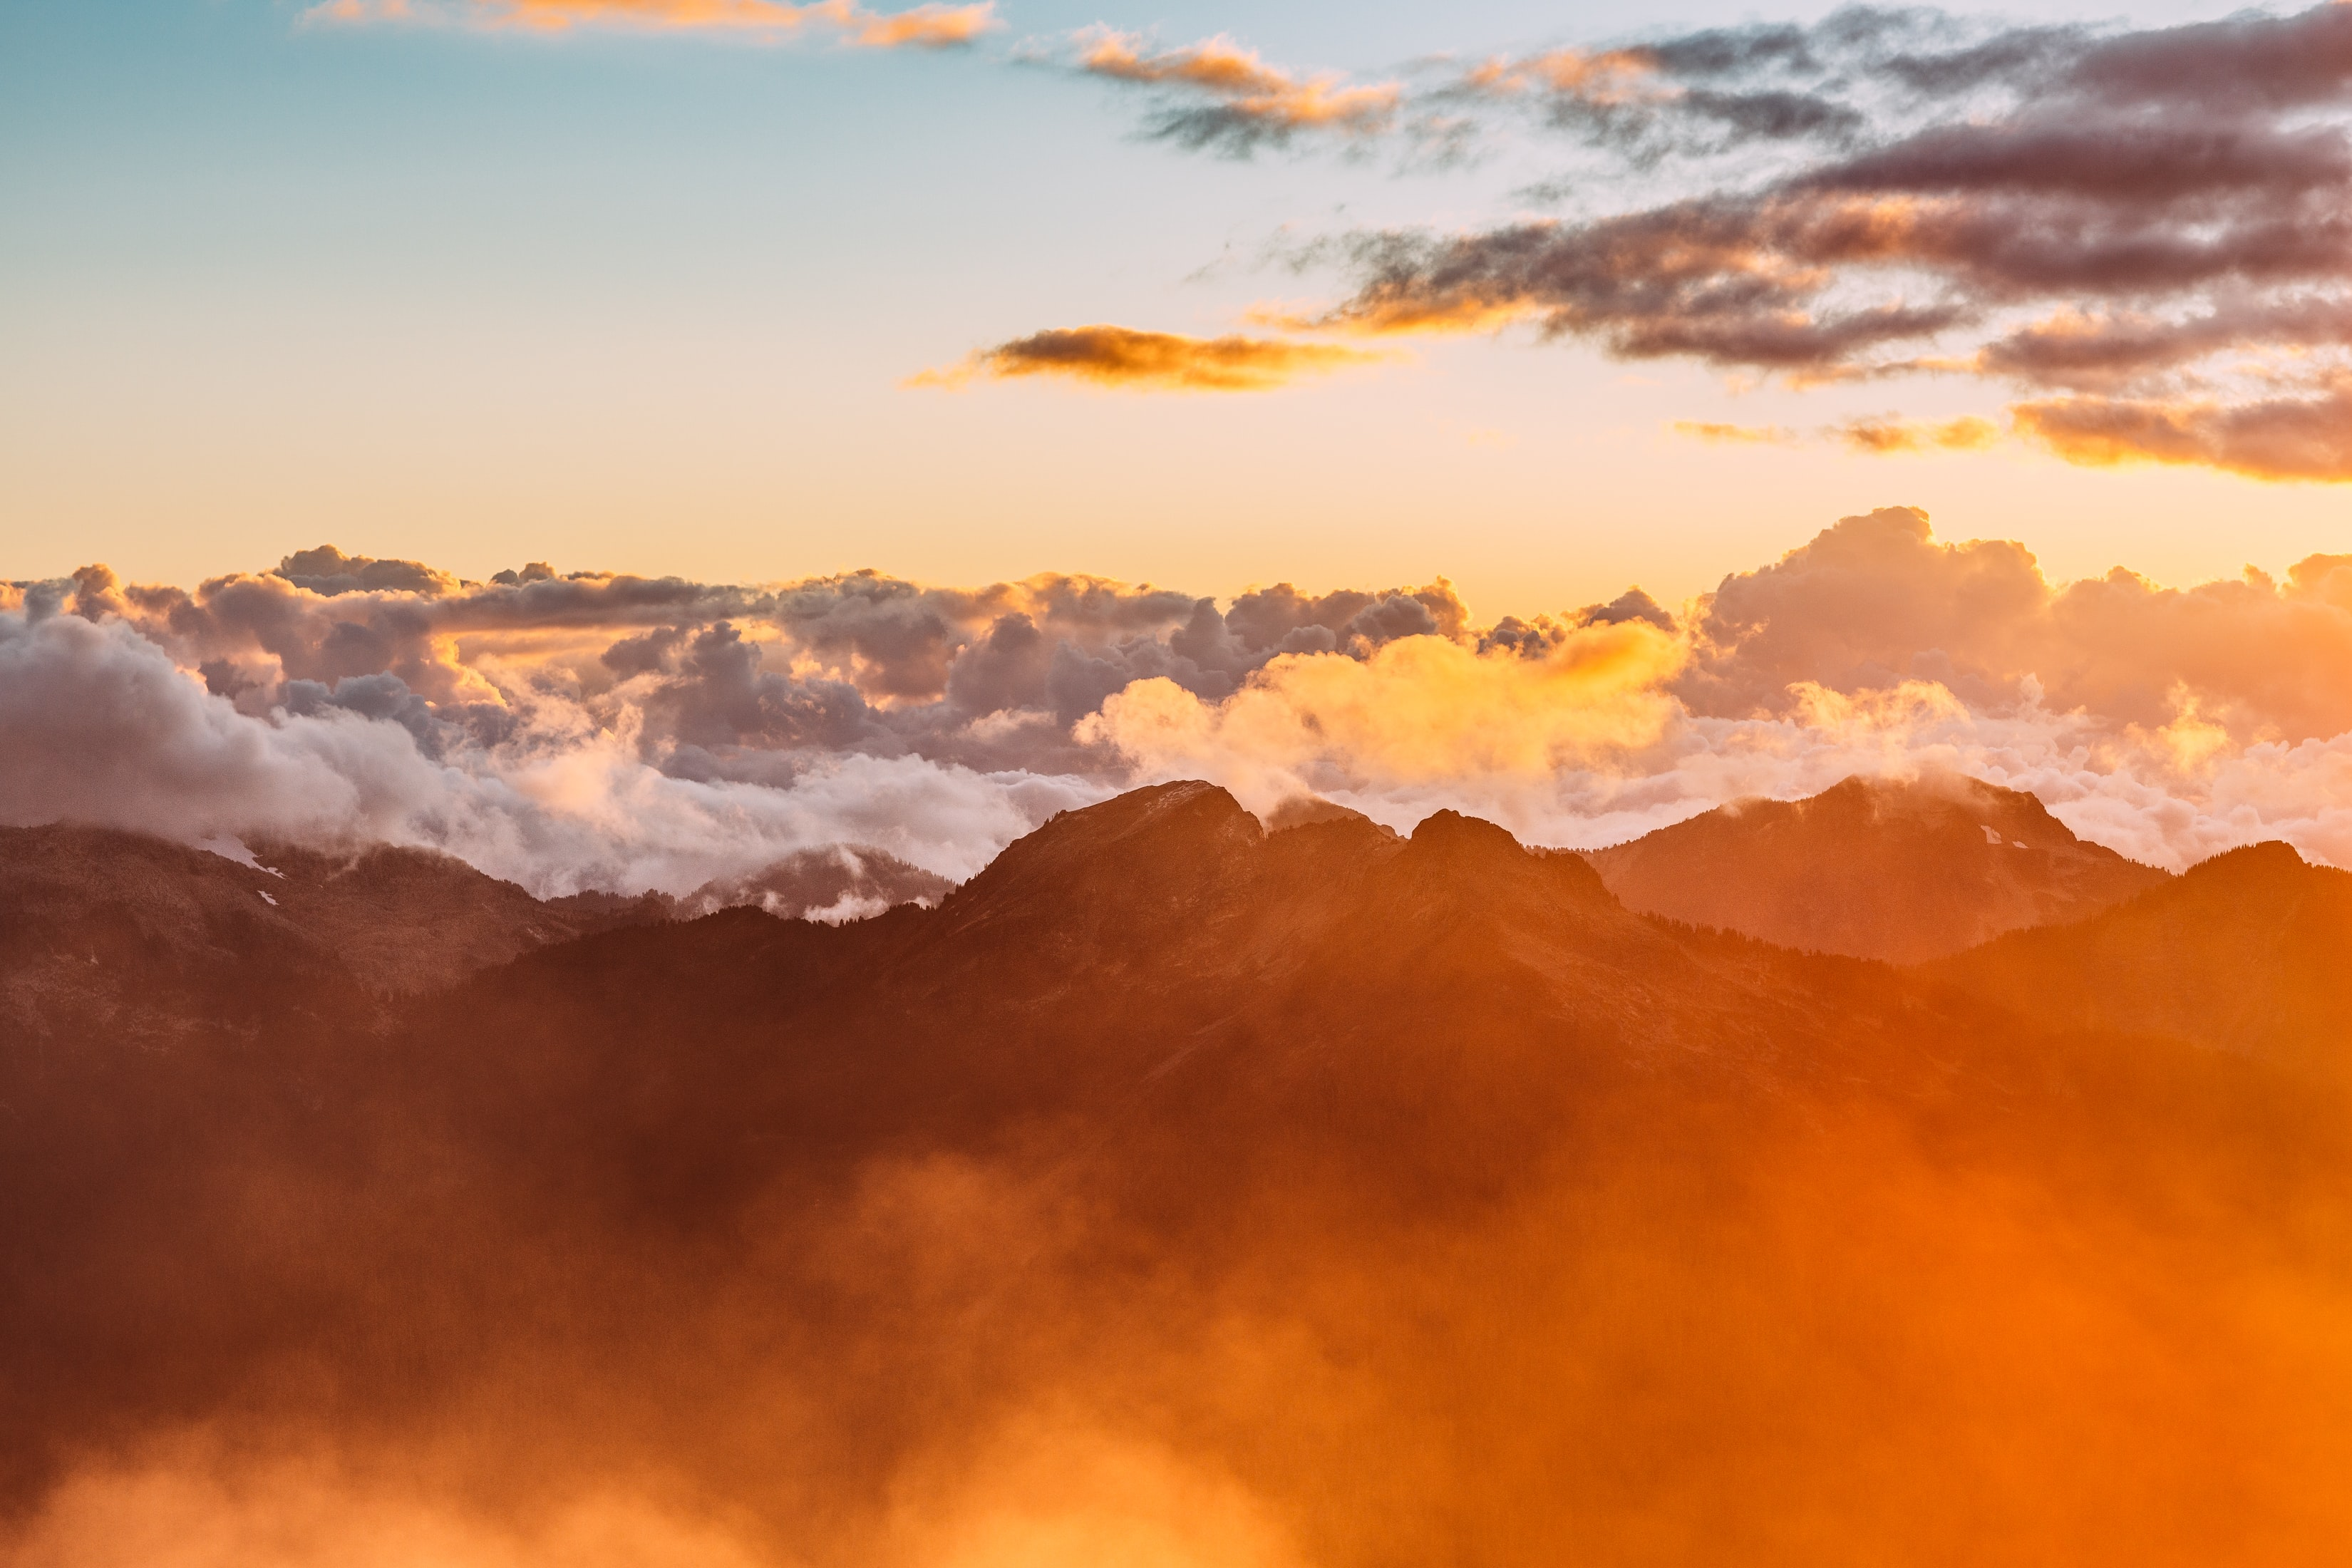 mac wallpapers find your next mac wallpaper on unsplash free tolandscape photography of mountains with cloudy skies during golden hour